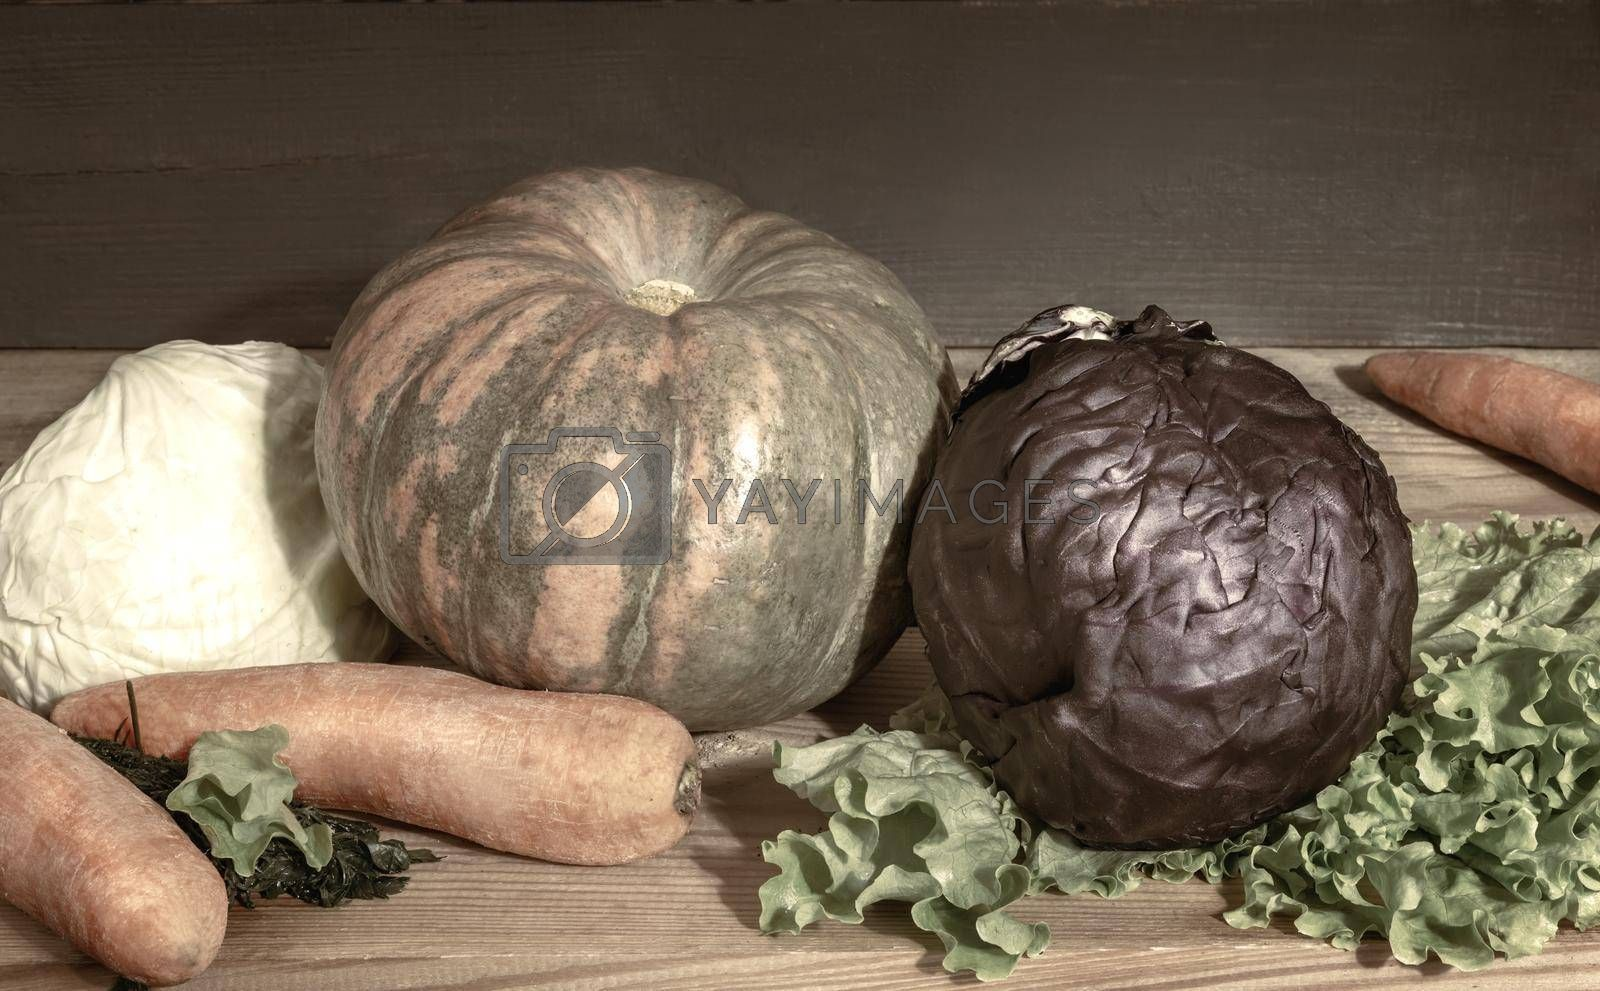 Still life: on a wooden shelf in the basement are pumpkins, carrots, red cabbage and white cabbage. Front view, copy space